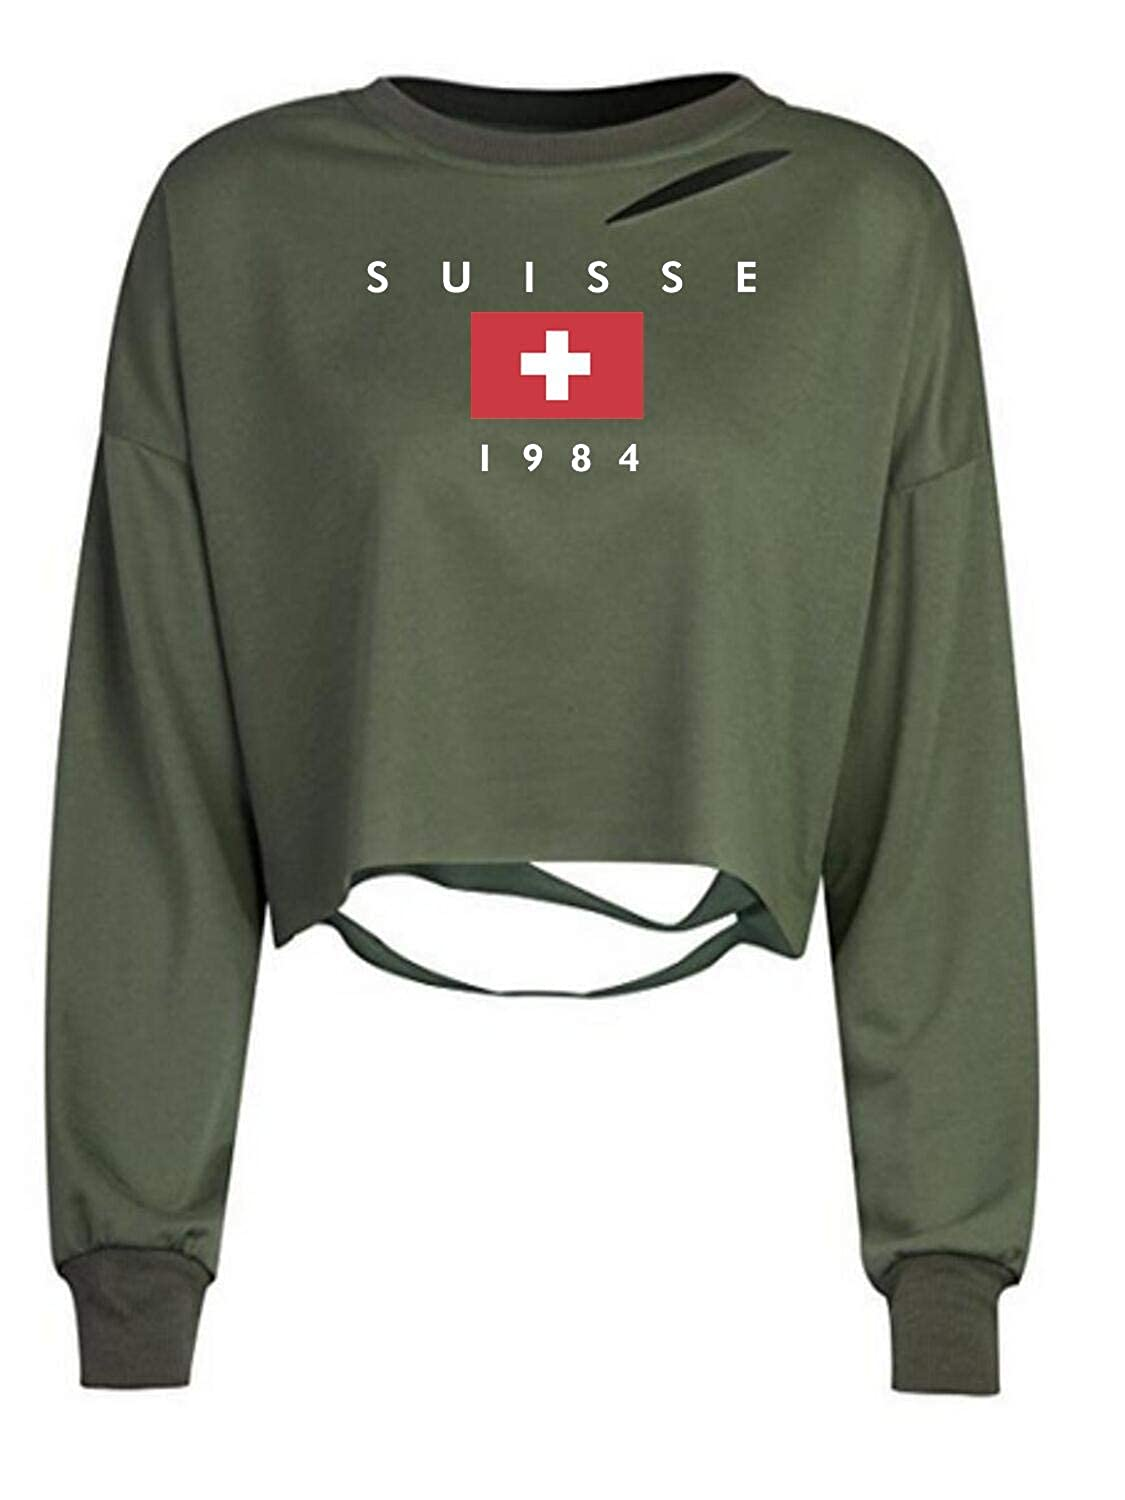 Choies Women Army Green Long Sleeve Ripped Cropped Sweatshirt Loose Pullover Crop Top